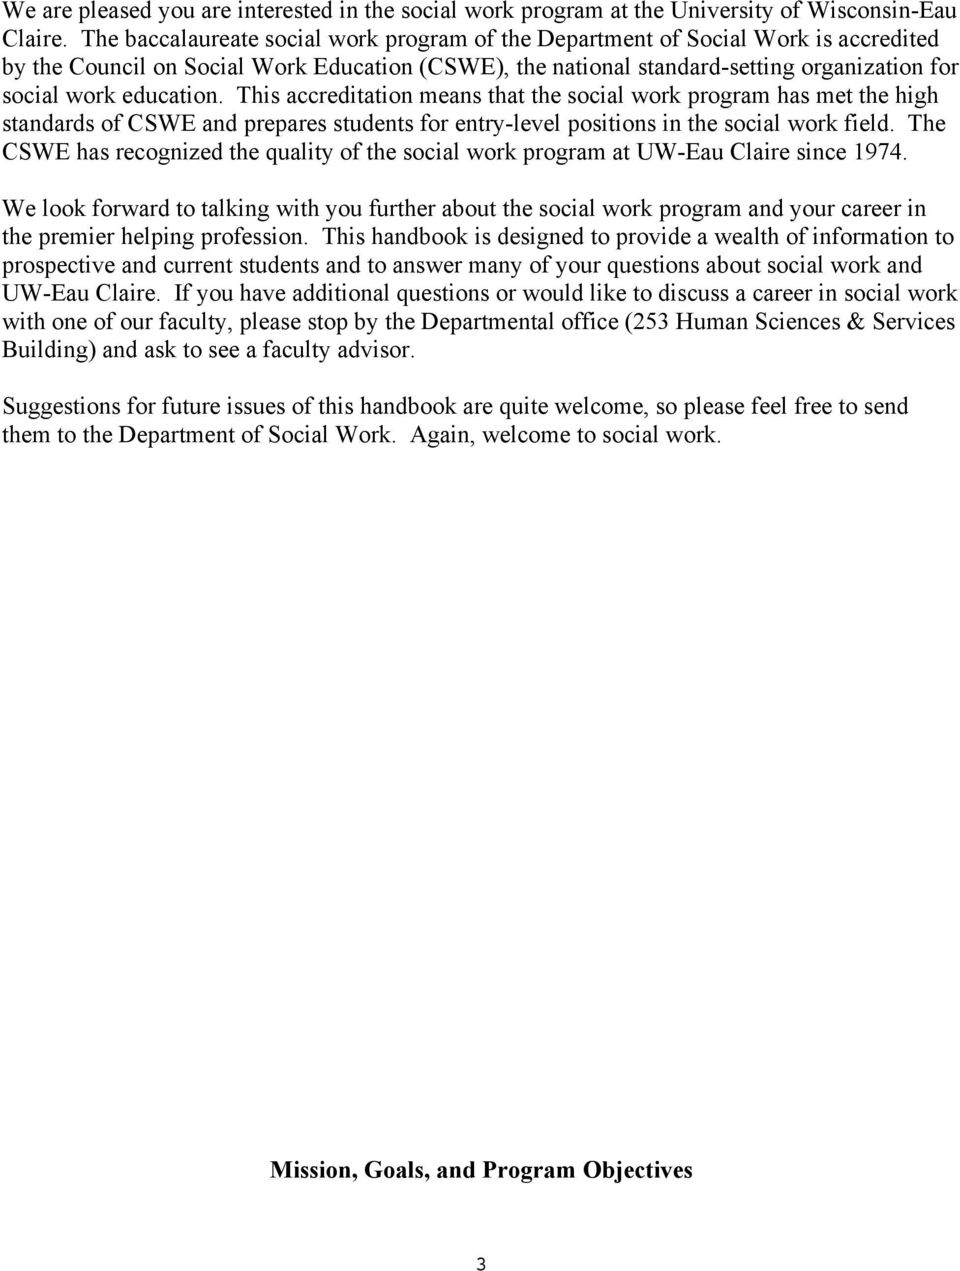 education. This accreditation means that the social work program has met the high standards of CSWE and prepares students for entry-level positions in the social work field.